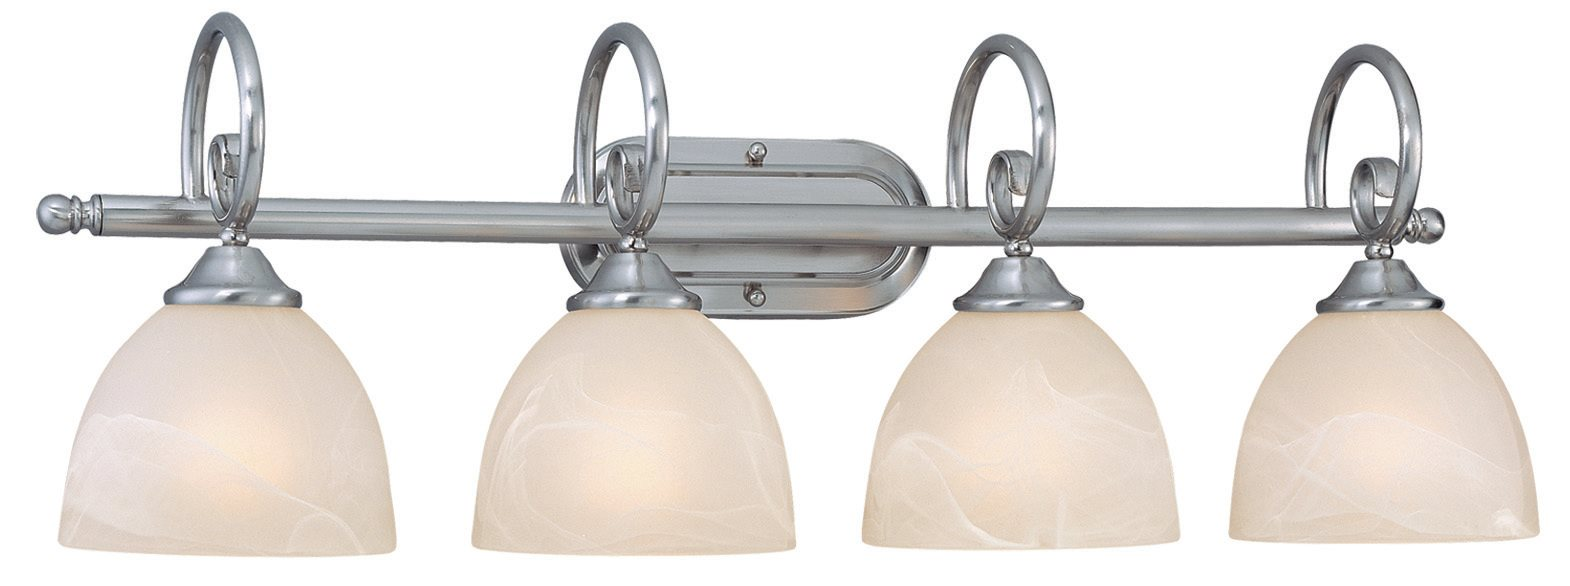 Jeremiah 25304 SN Raleigh Traditional Bathroom Vanity Light CM 25304 SN